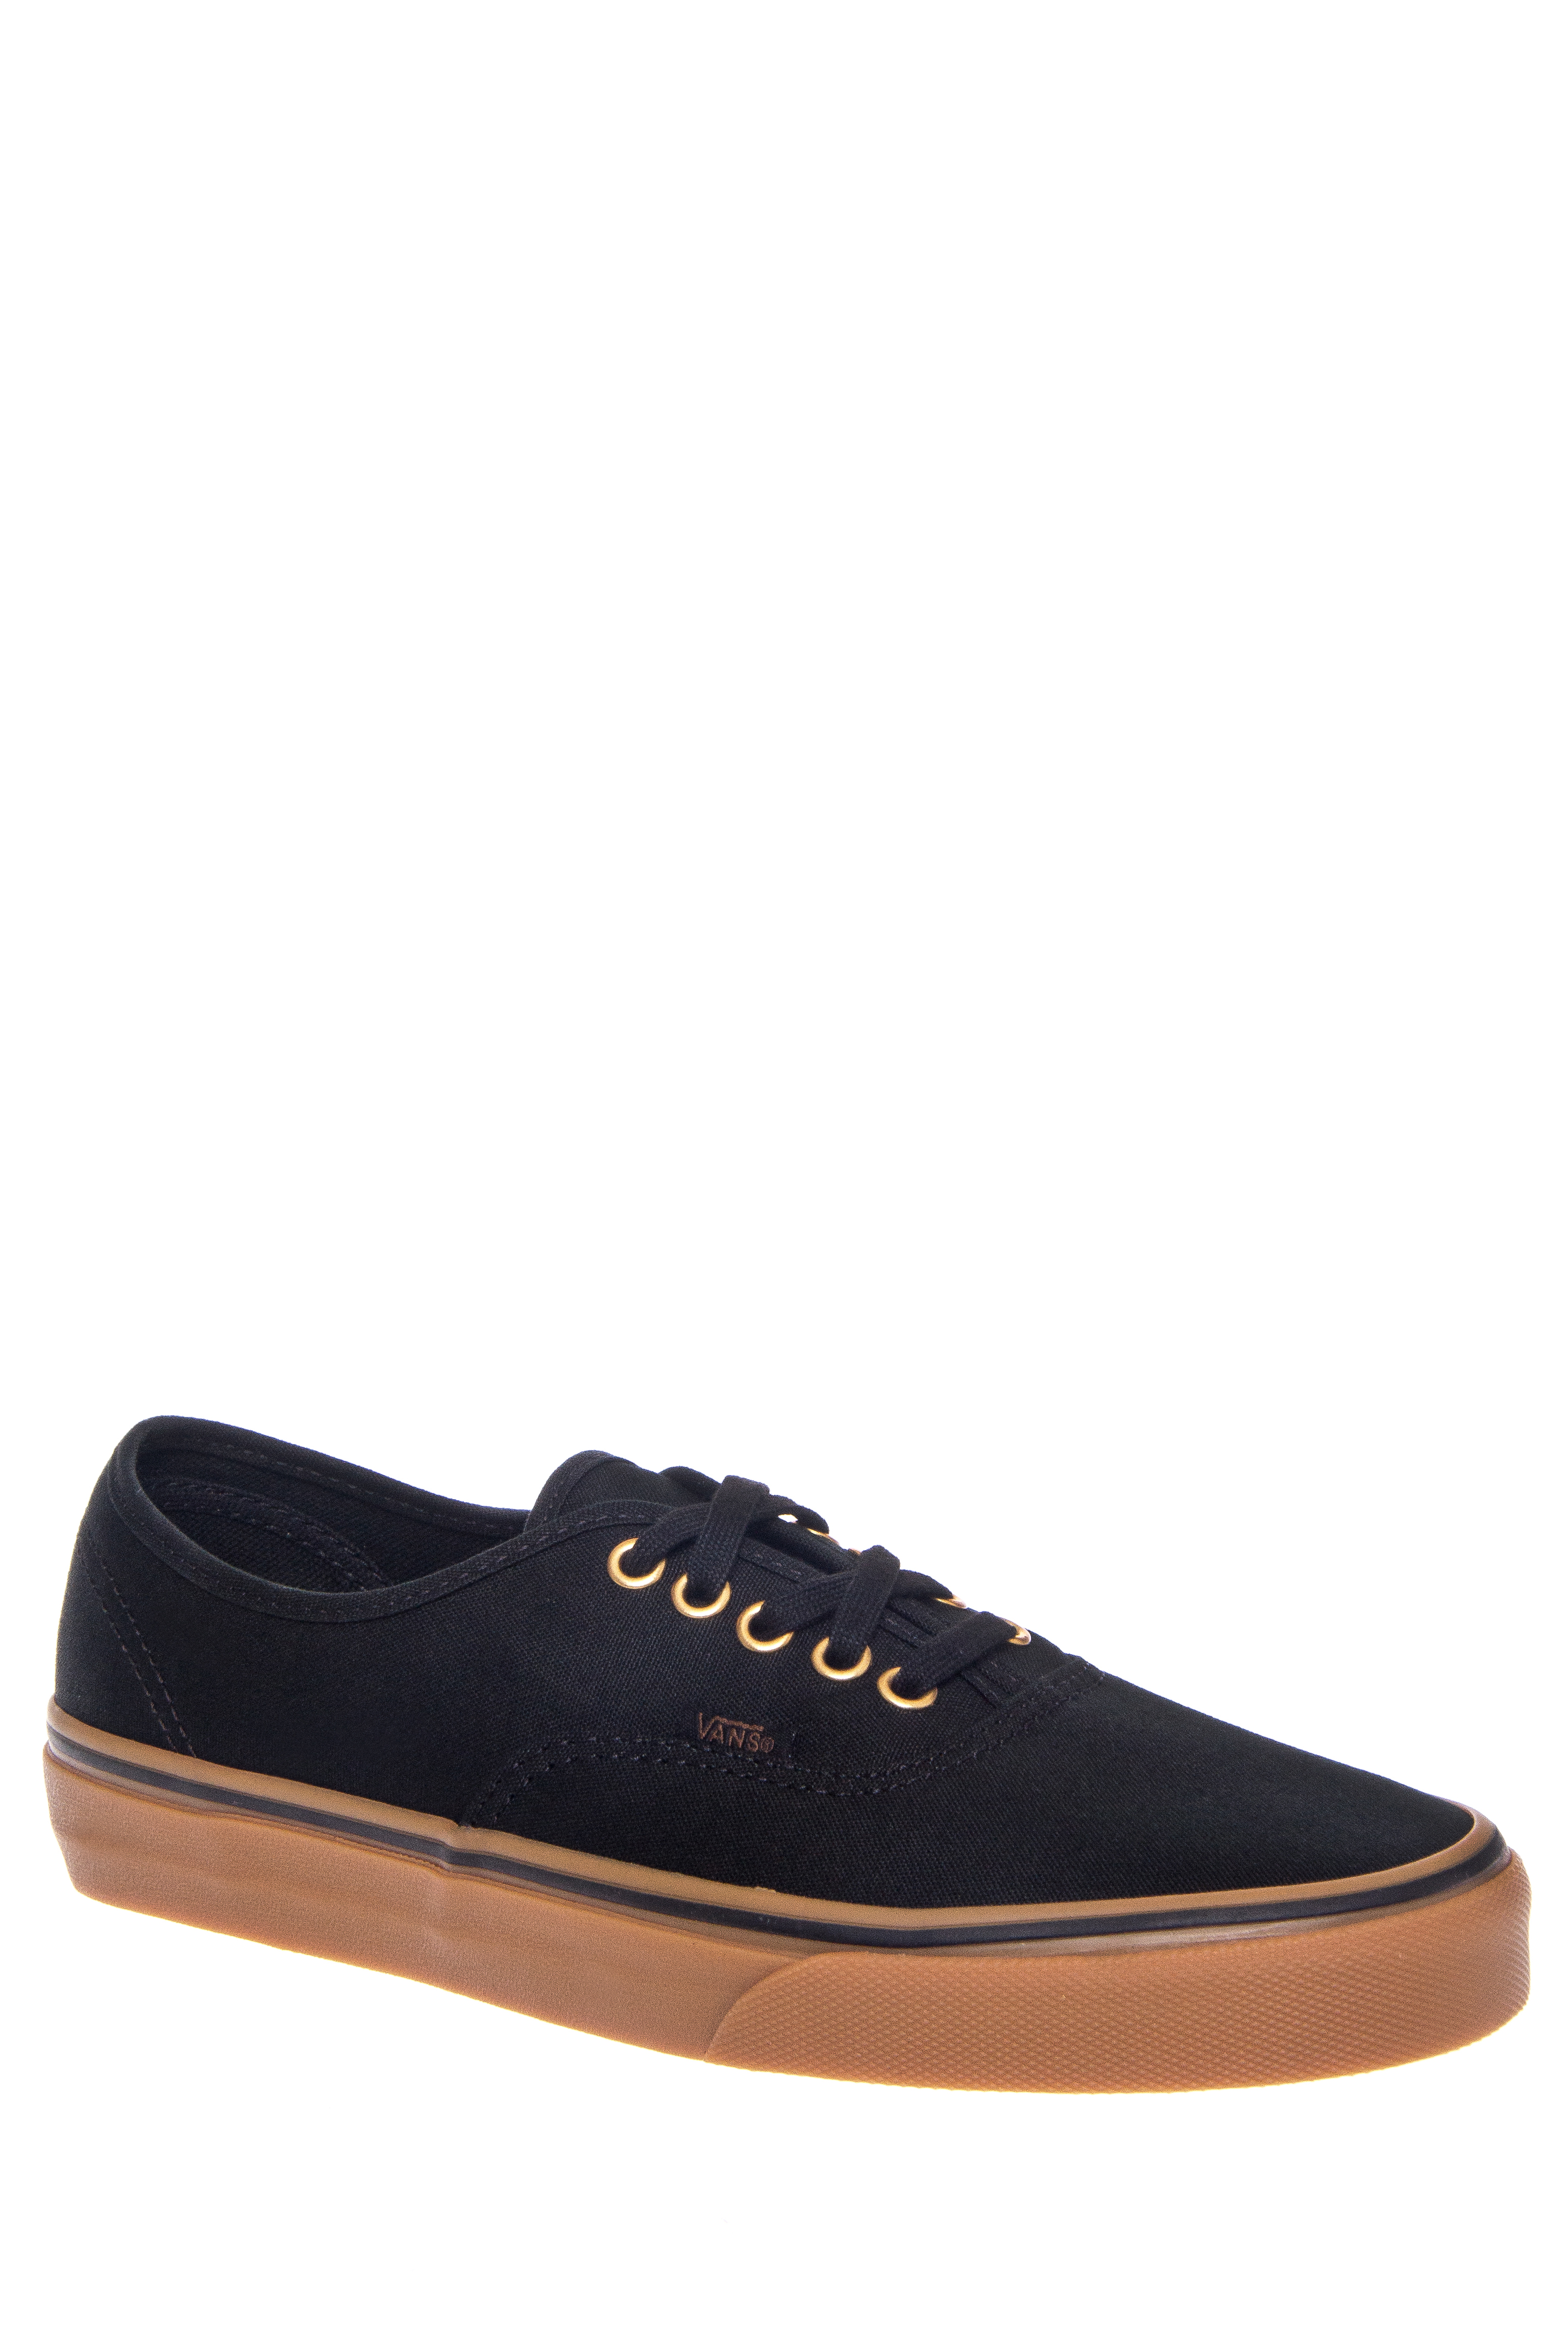 Vans Unisex Authentic Low Top Sneakers - Black / Tan